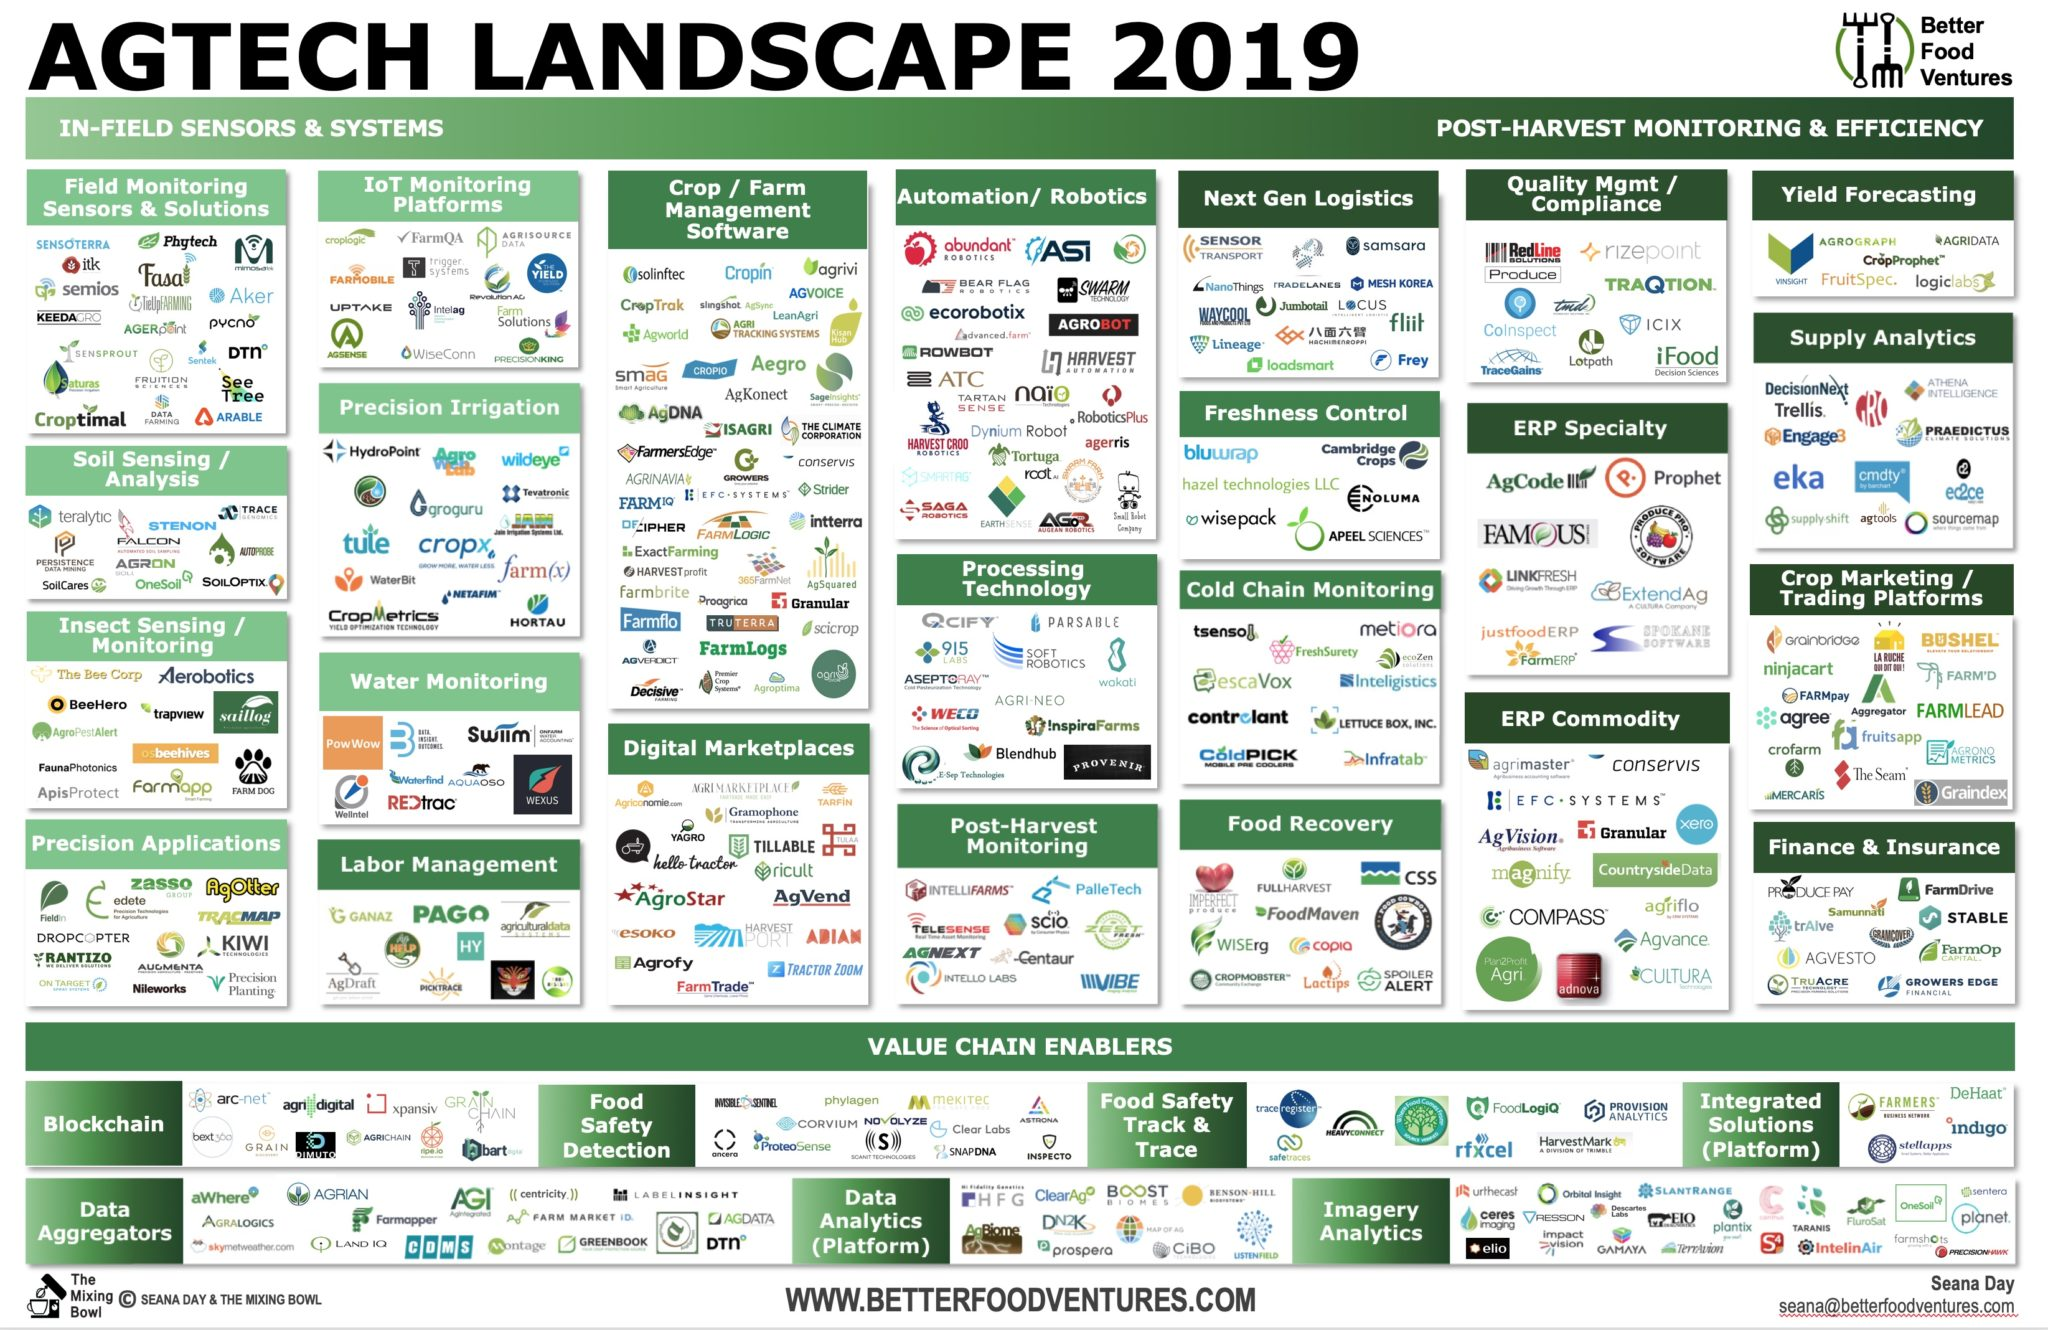 This is an image of a chart for the AGTECH landscape. It is for the year 2019.